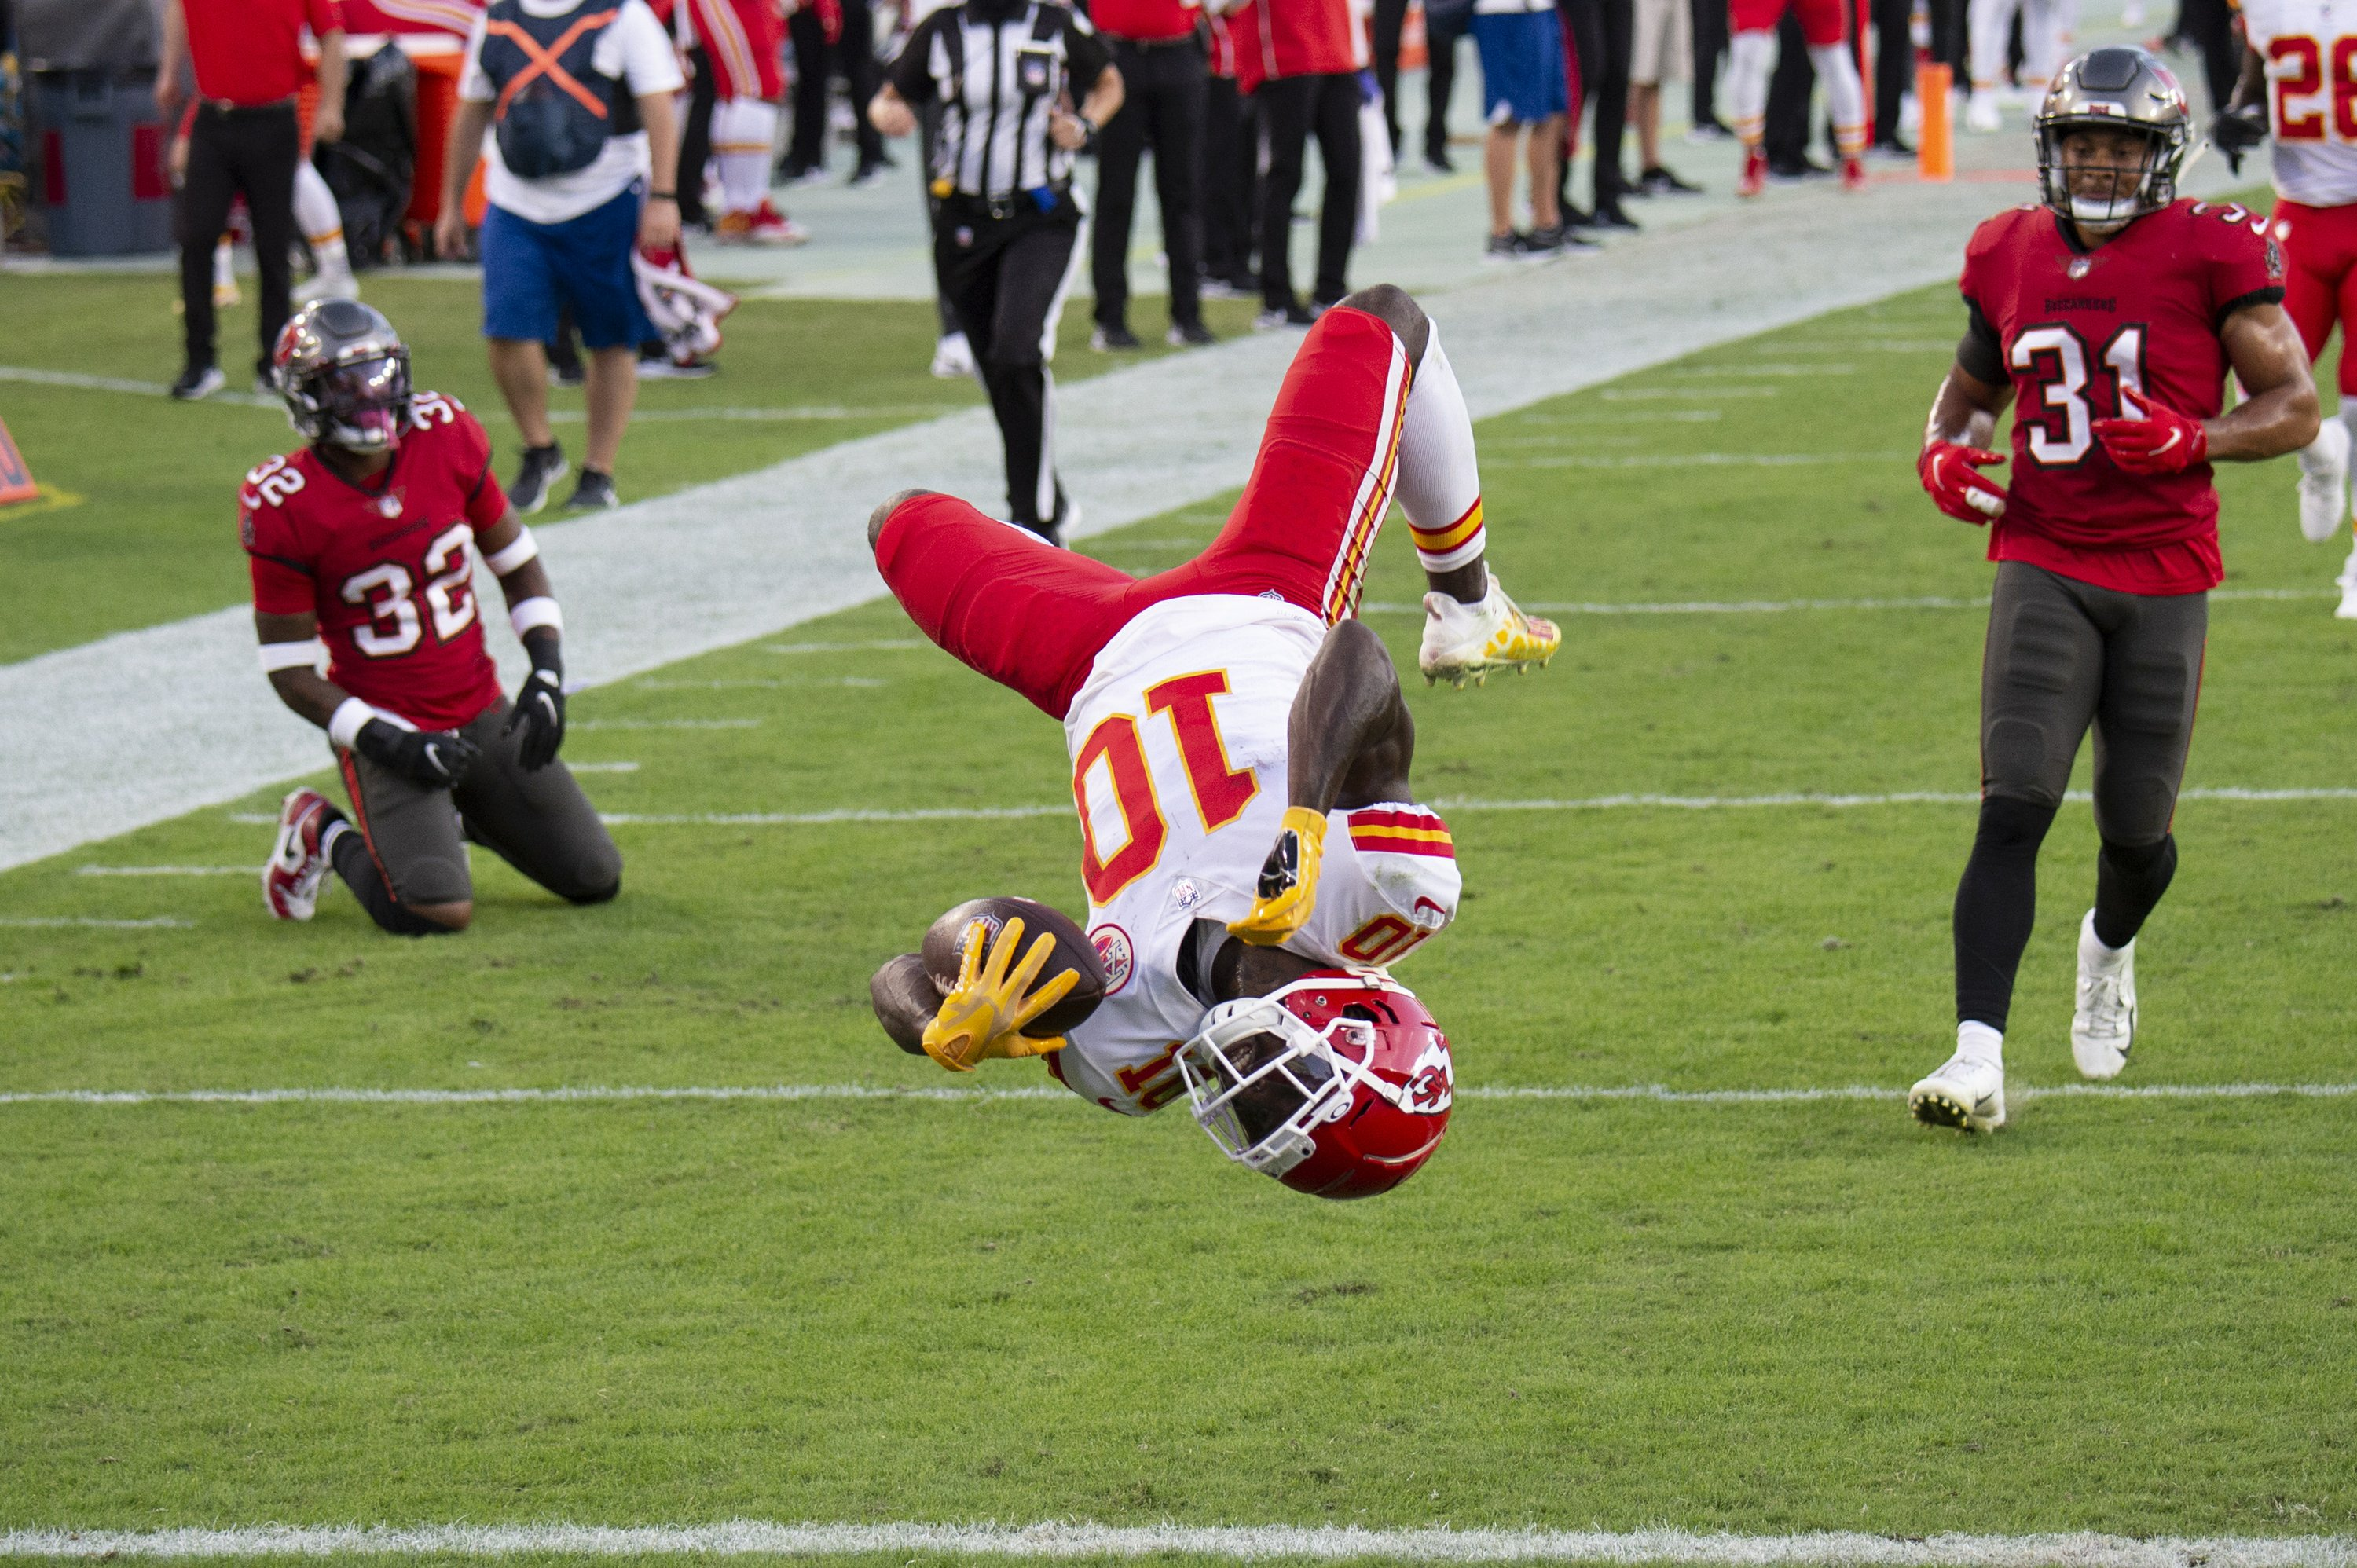 Super rematch: Hill burned Bucs repeatedly in 1st meeting